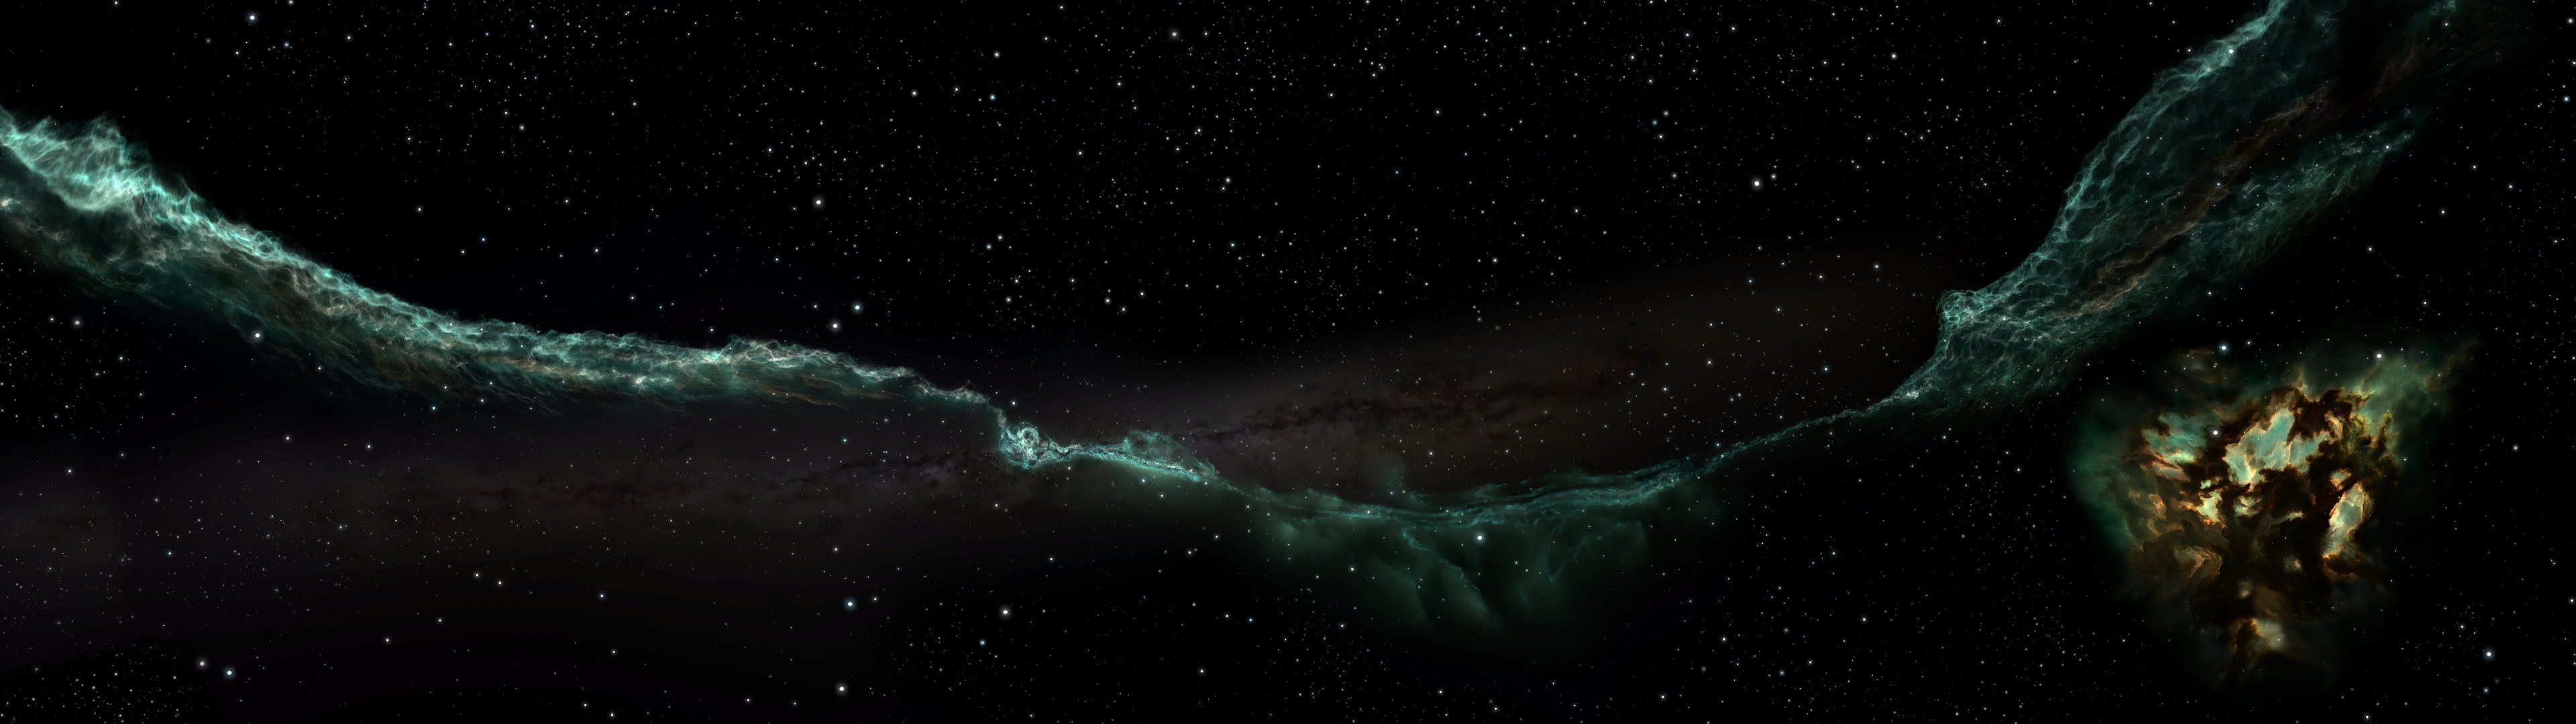 Space Hd 3840x1080 Wallpapers Top Free Space Hd 3840x1080 Backgrounds Wallpaperaccess